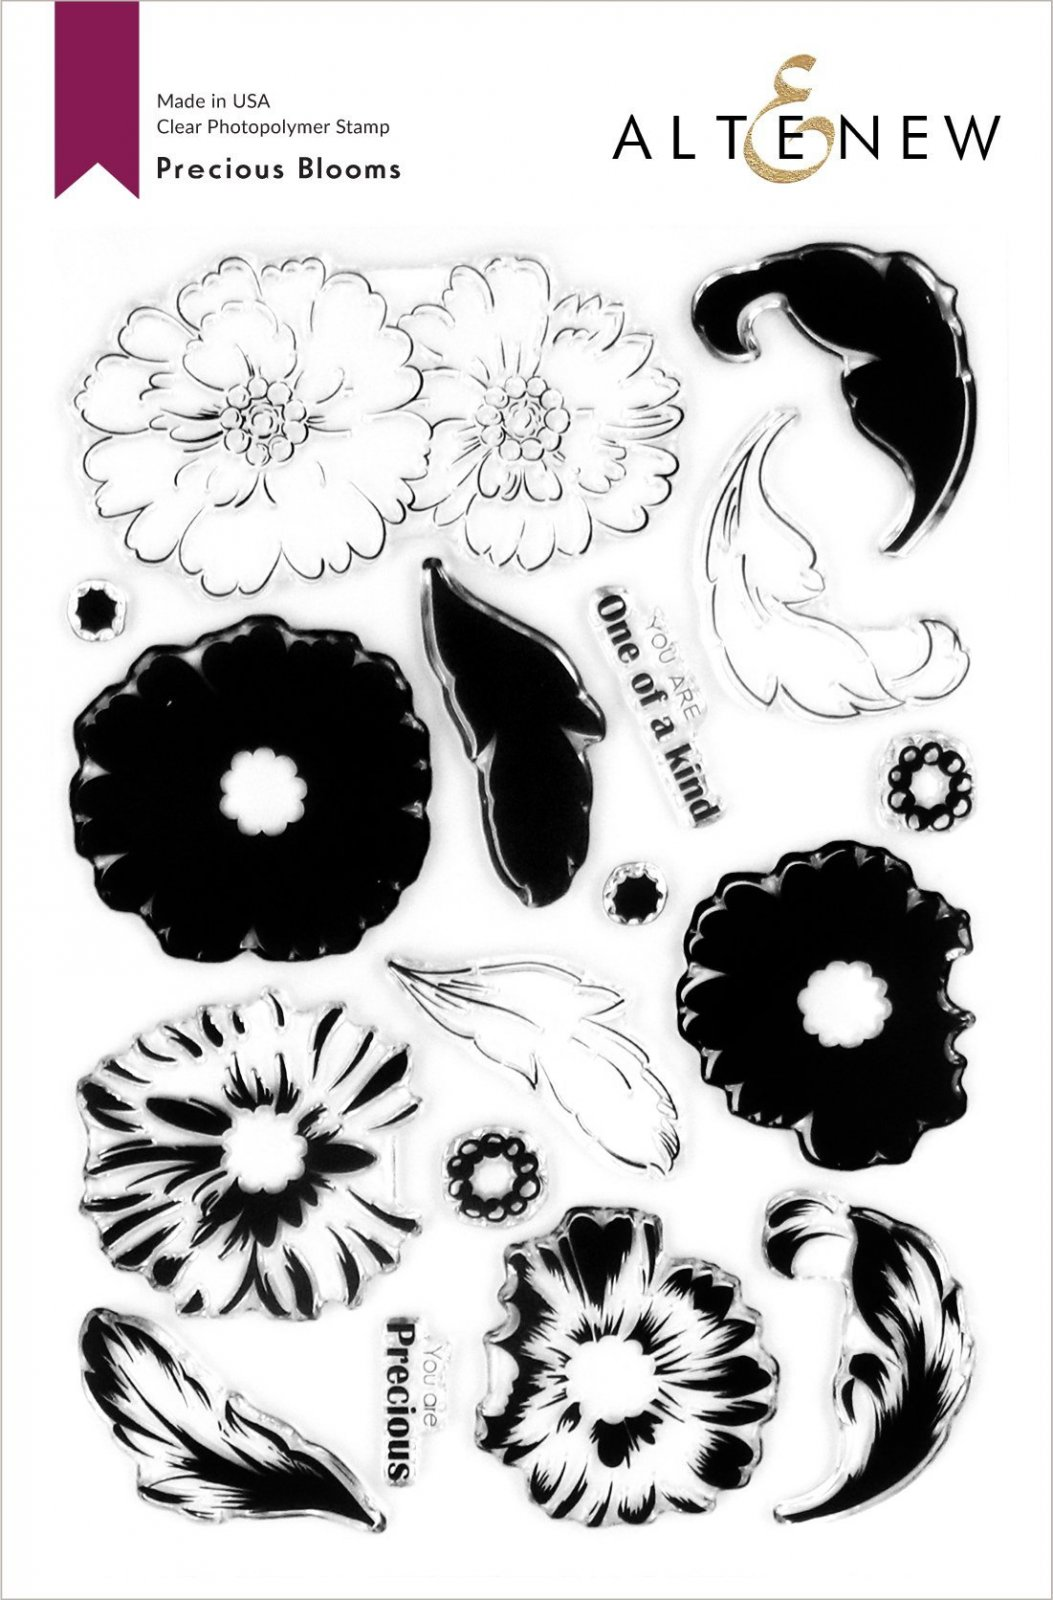 Altenew -  Clear Photopolymer Stamps -  Precious Blooms